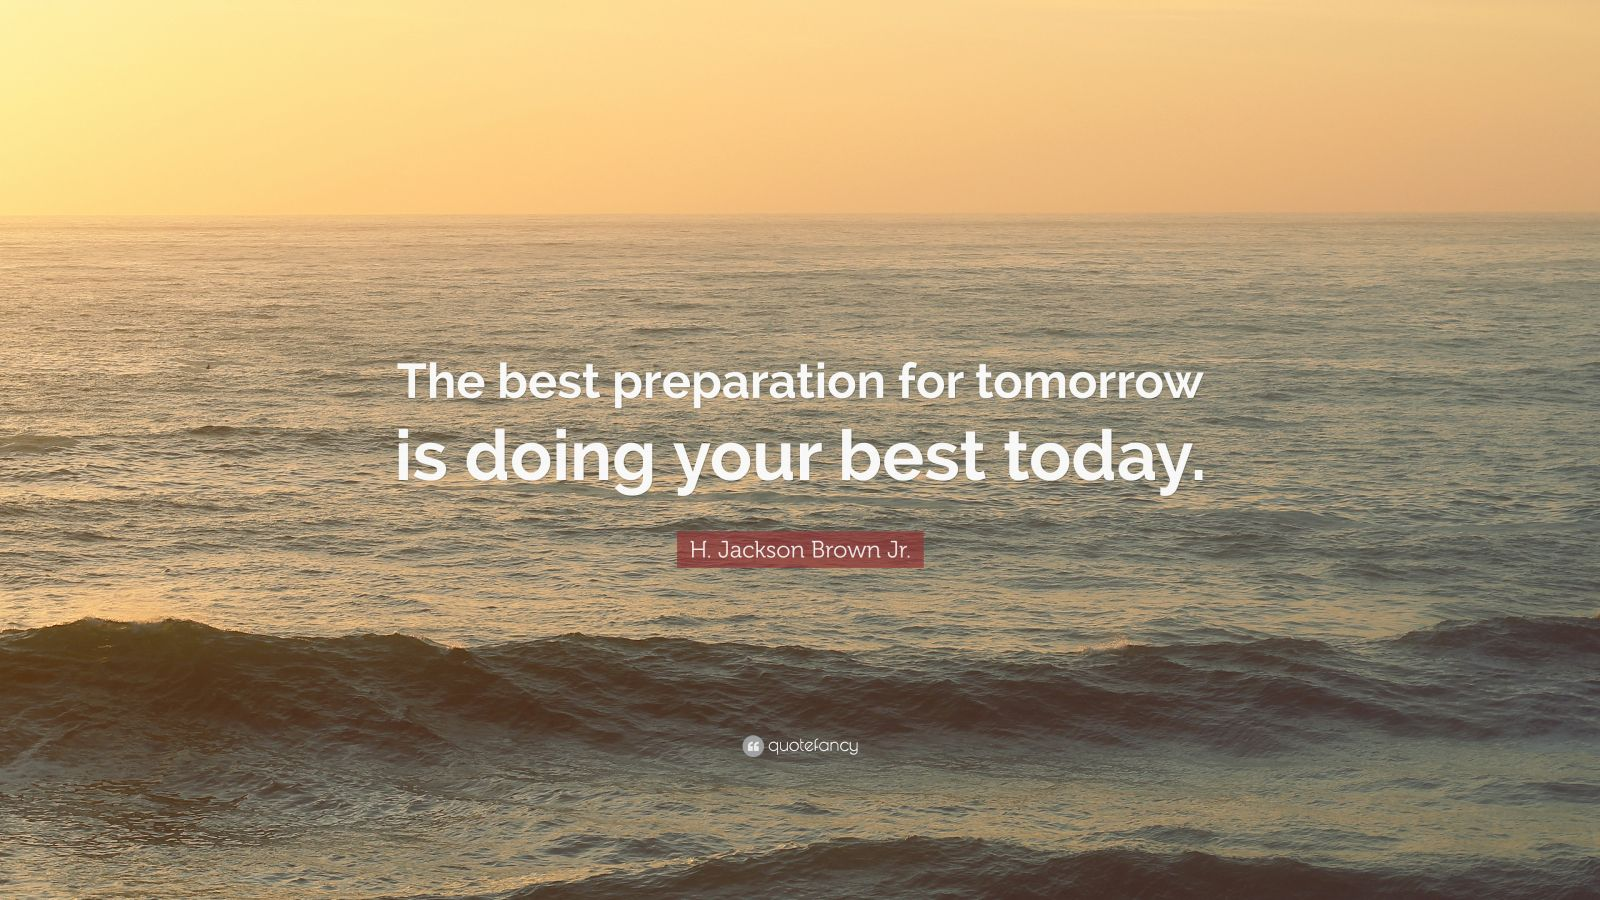 Wallpaper Motivational Quotes 42 H Jackson Brown Jr Quote The Best Preparation For